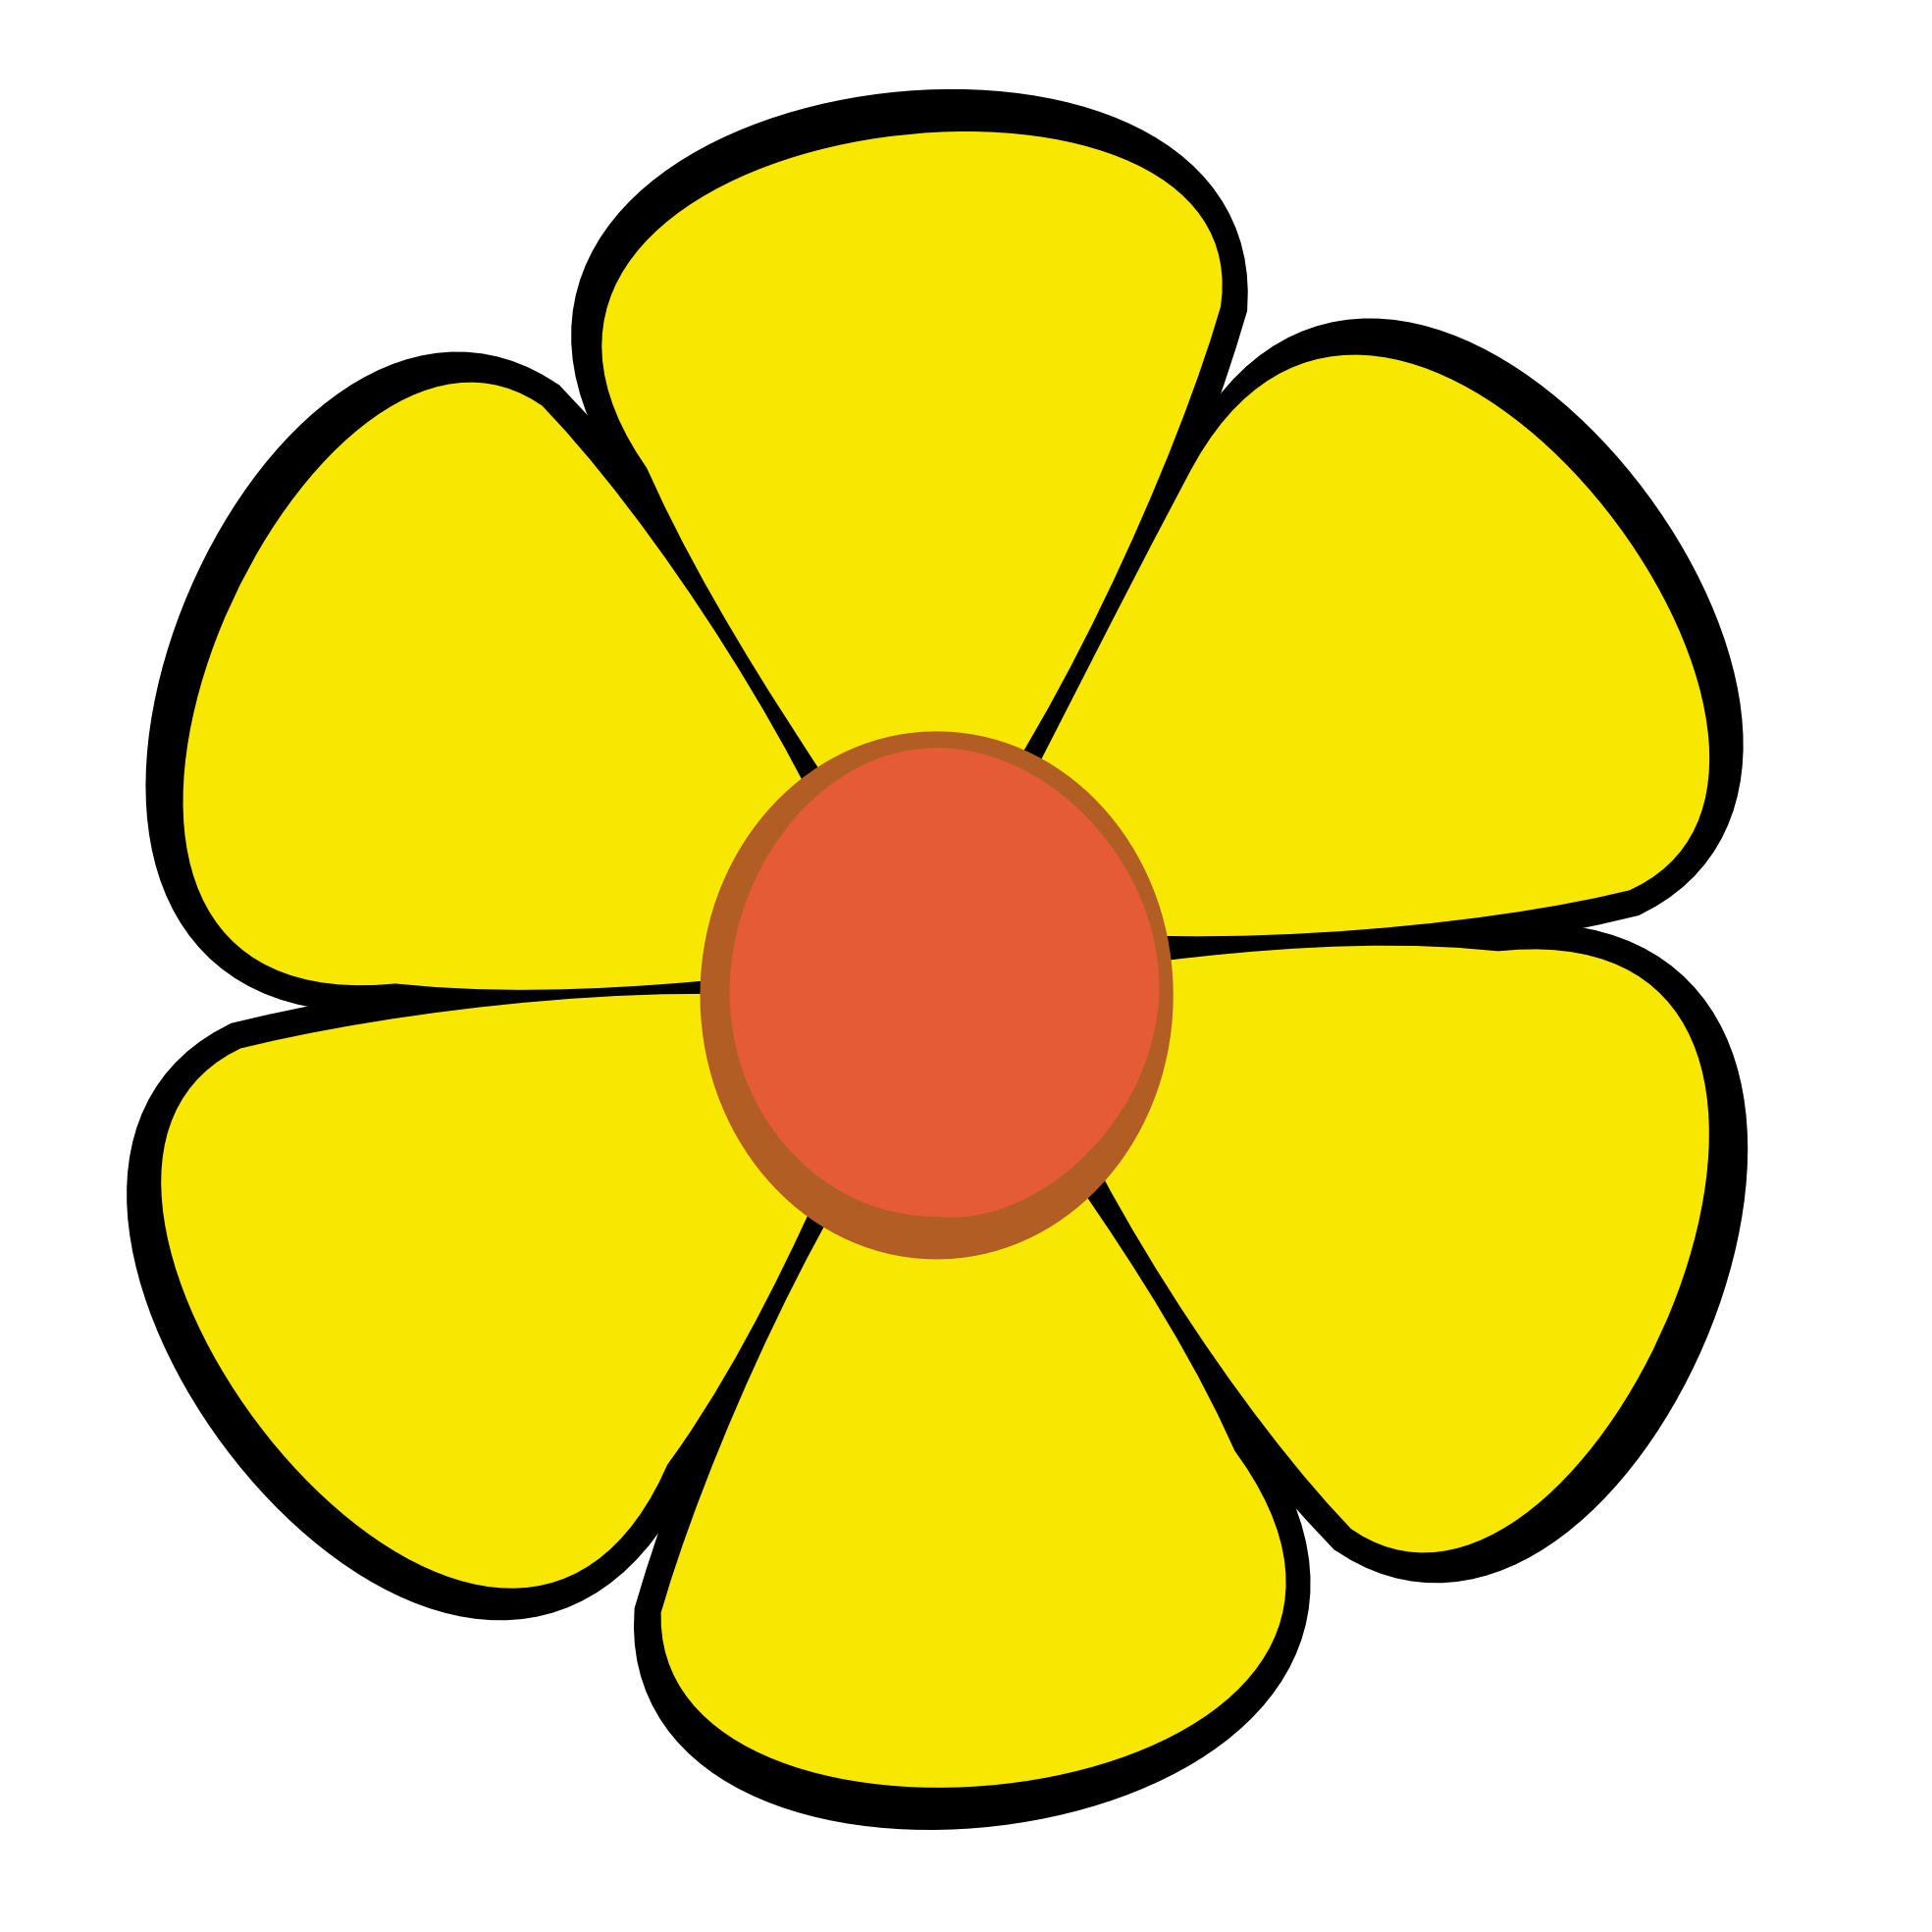 Yellow Flower clipart february flower Png clipartsy Flower Flower Flower